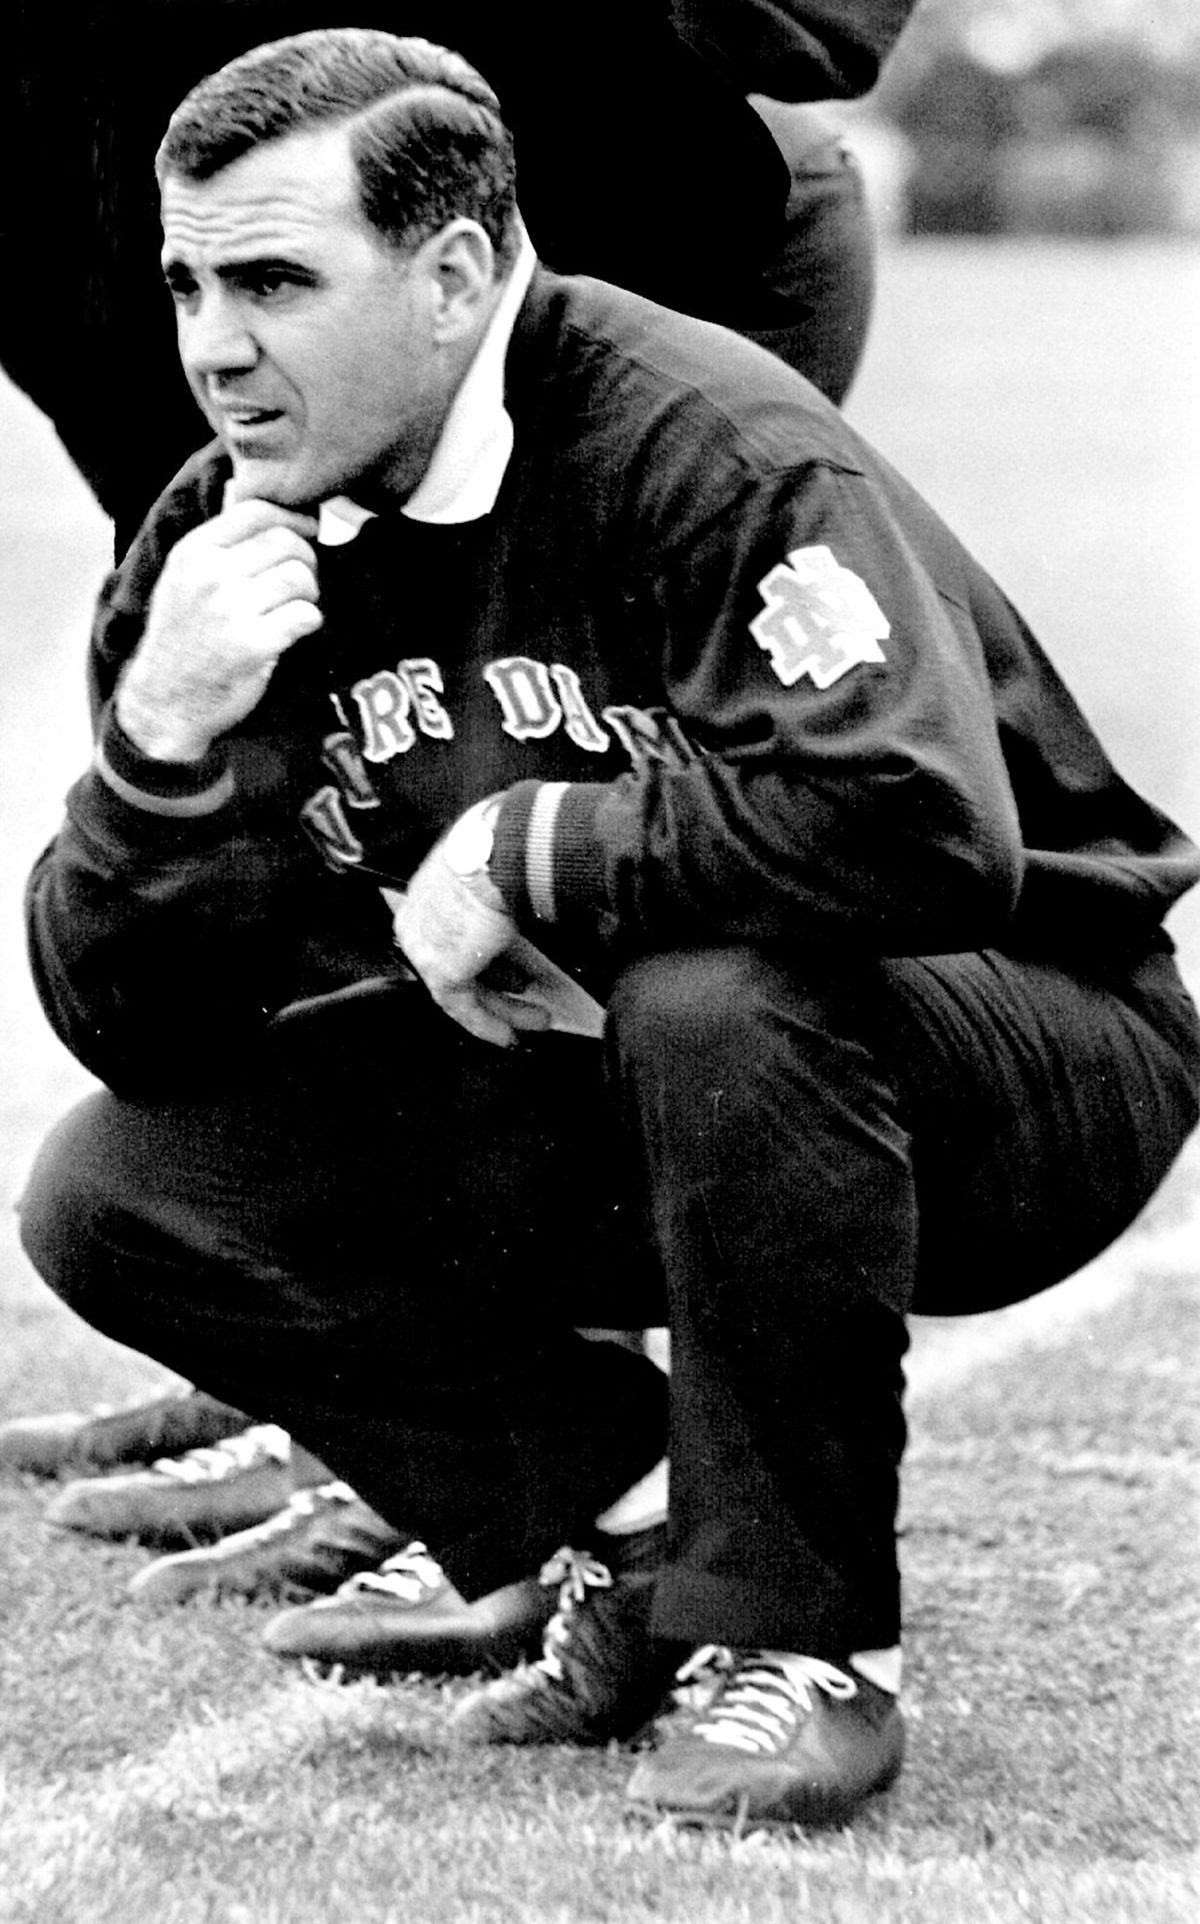 Ara Parseghian, who led Notre Dame to 2 national football championships, dies at 94